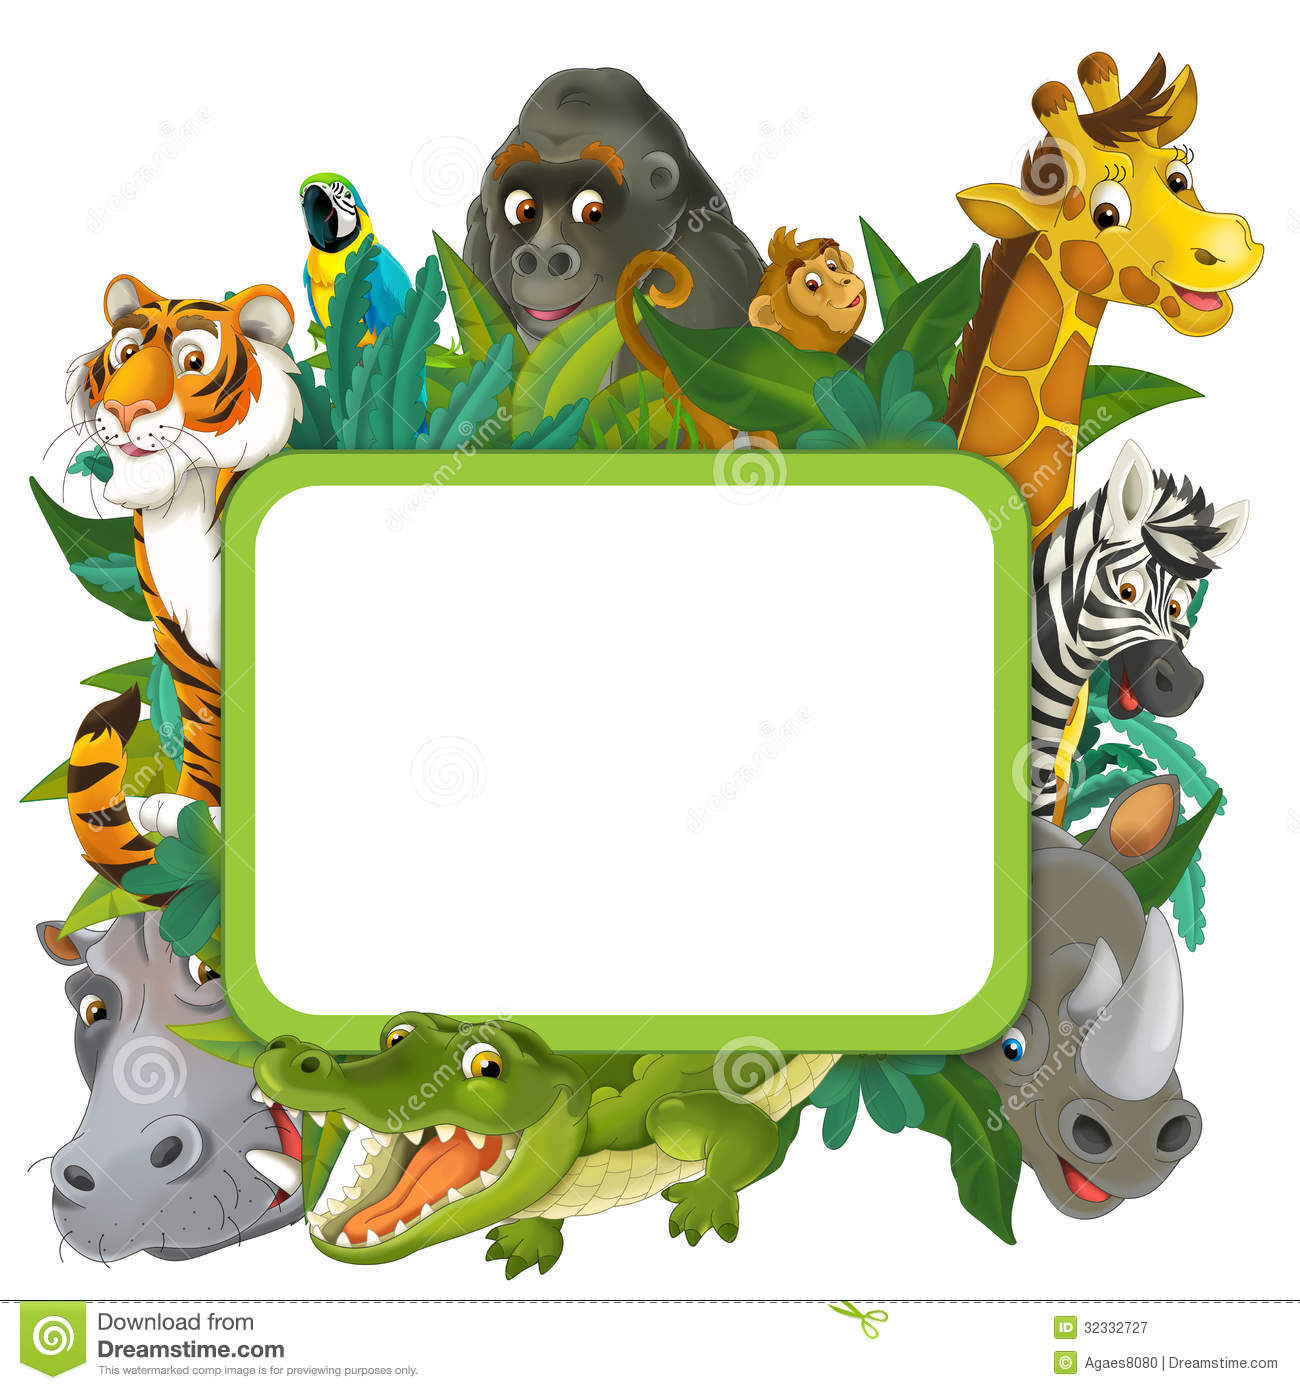 Banner   Frame   Border   Jungle Safari Theme   Illustration For The